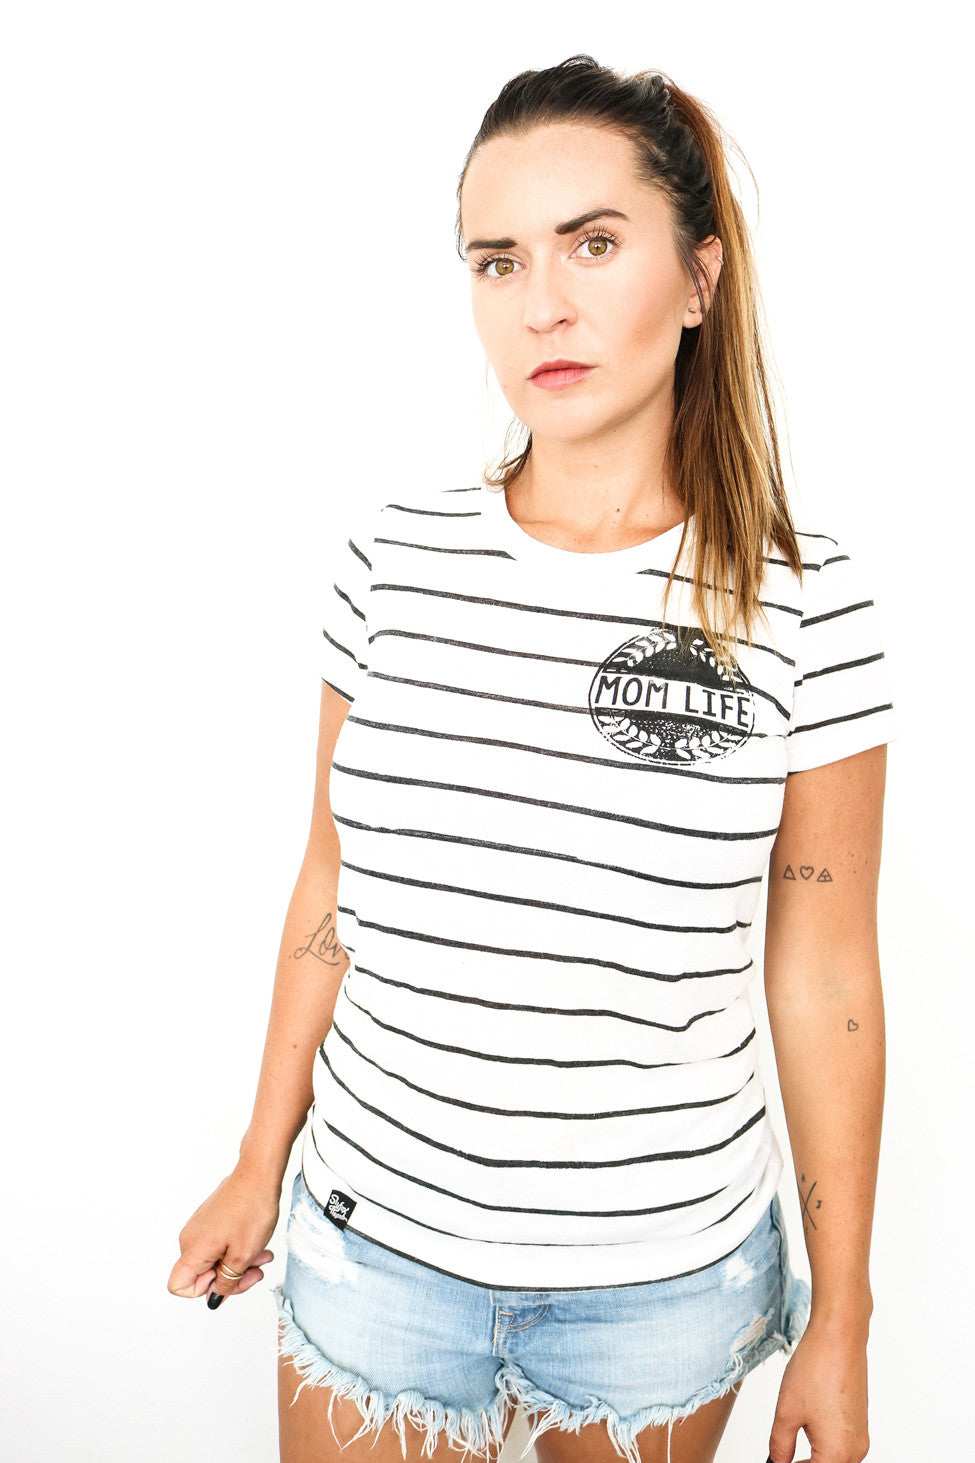 Mom Life Vintage Striped Tee